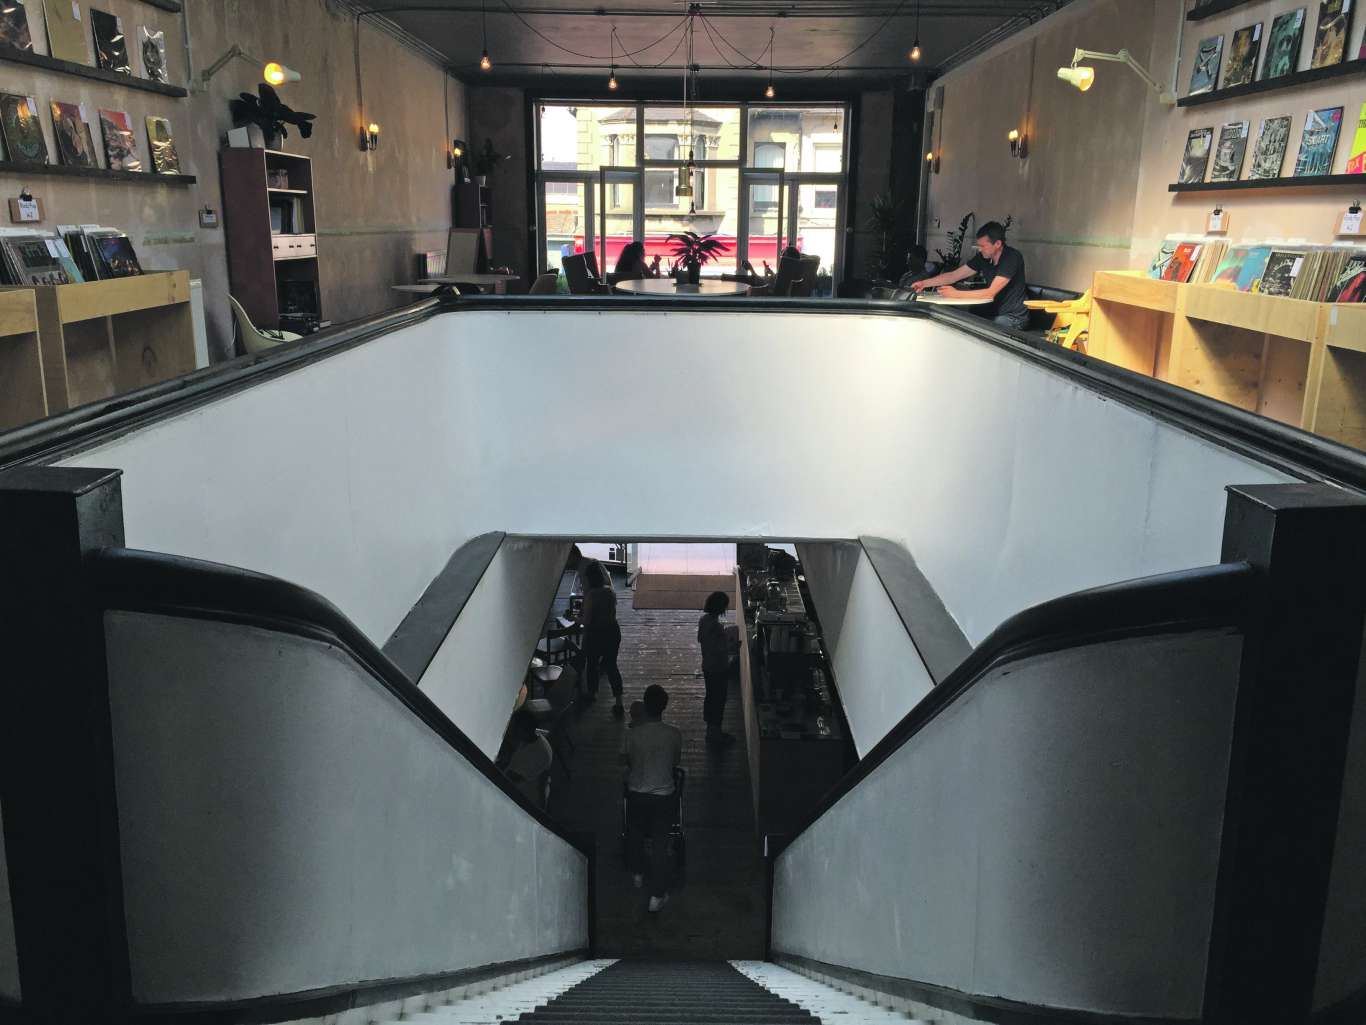 Cliff's cafe viewed from the top of its black and white staircase. Photo: Stephen Emms